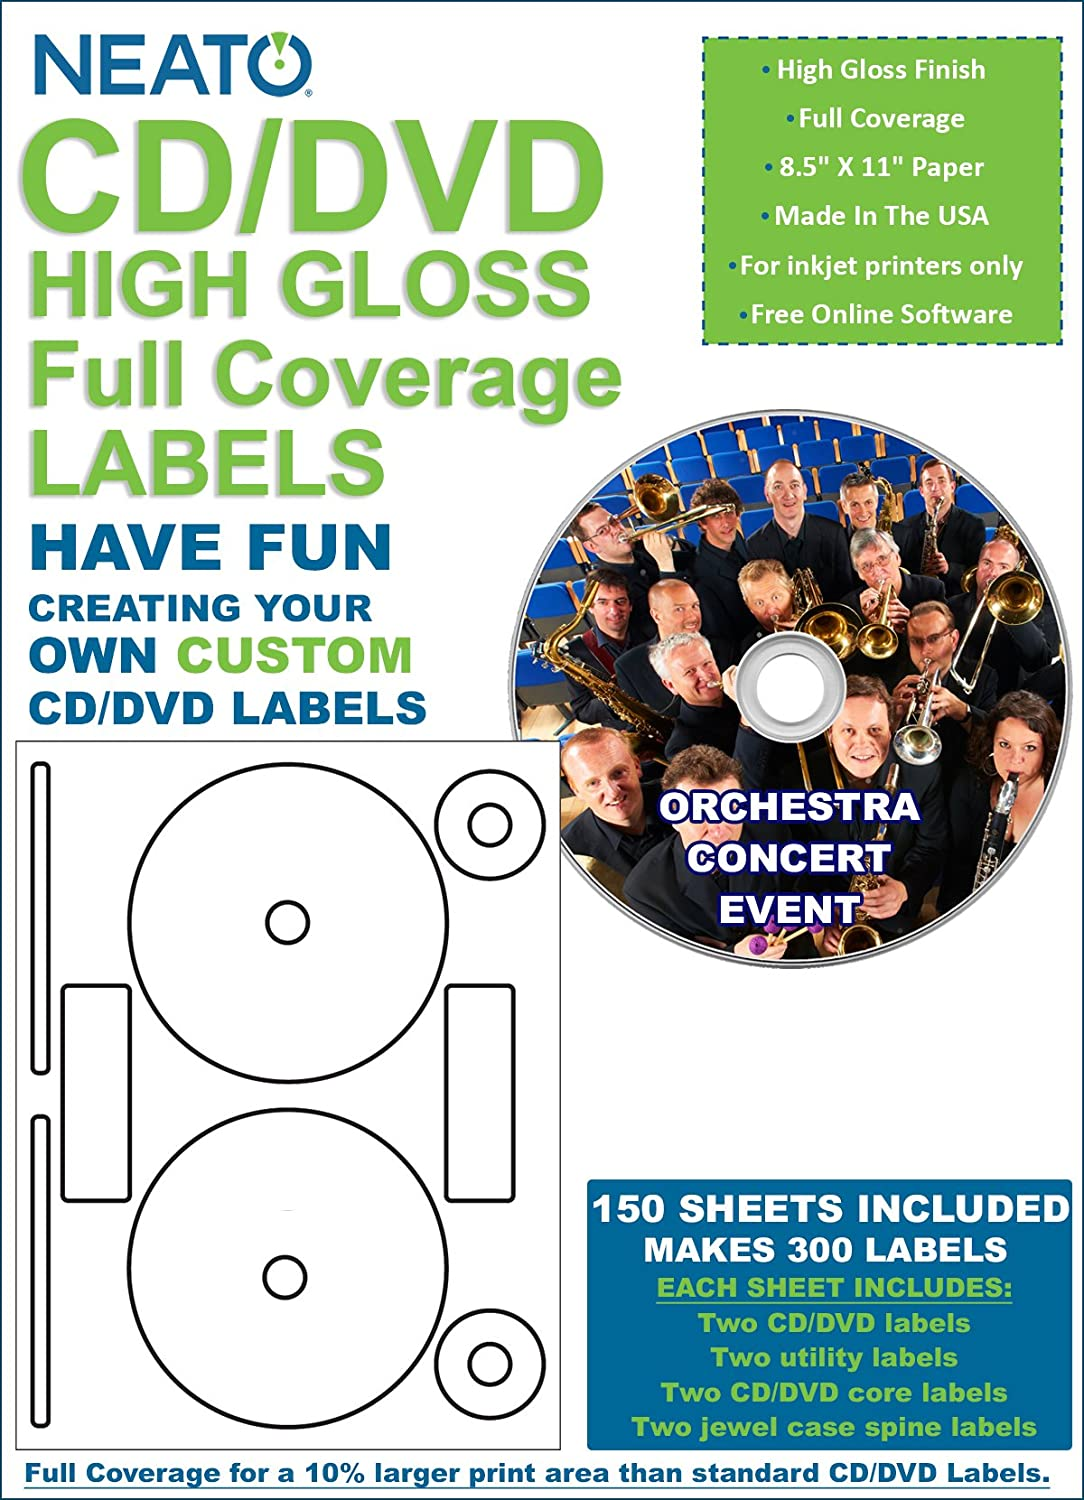 Amazon Com Neato Full Coverage High Gloss Photo Quality Cd Dvd Labels 300 Labels 150 Sheets Free Online Design Software Included Office Products